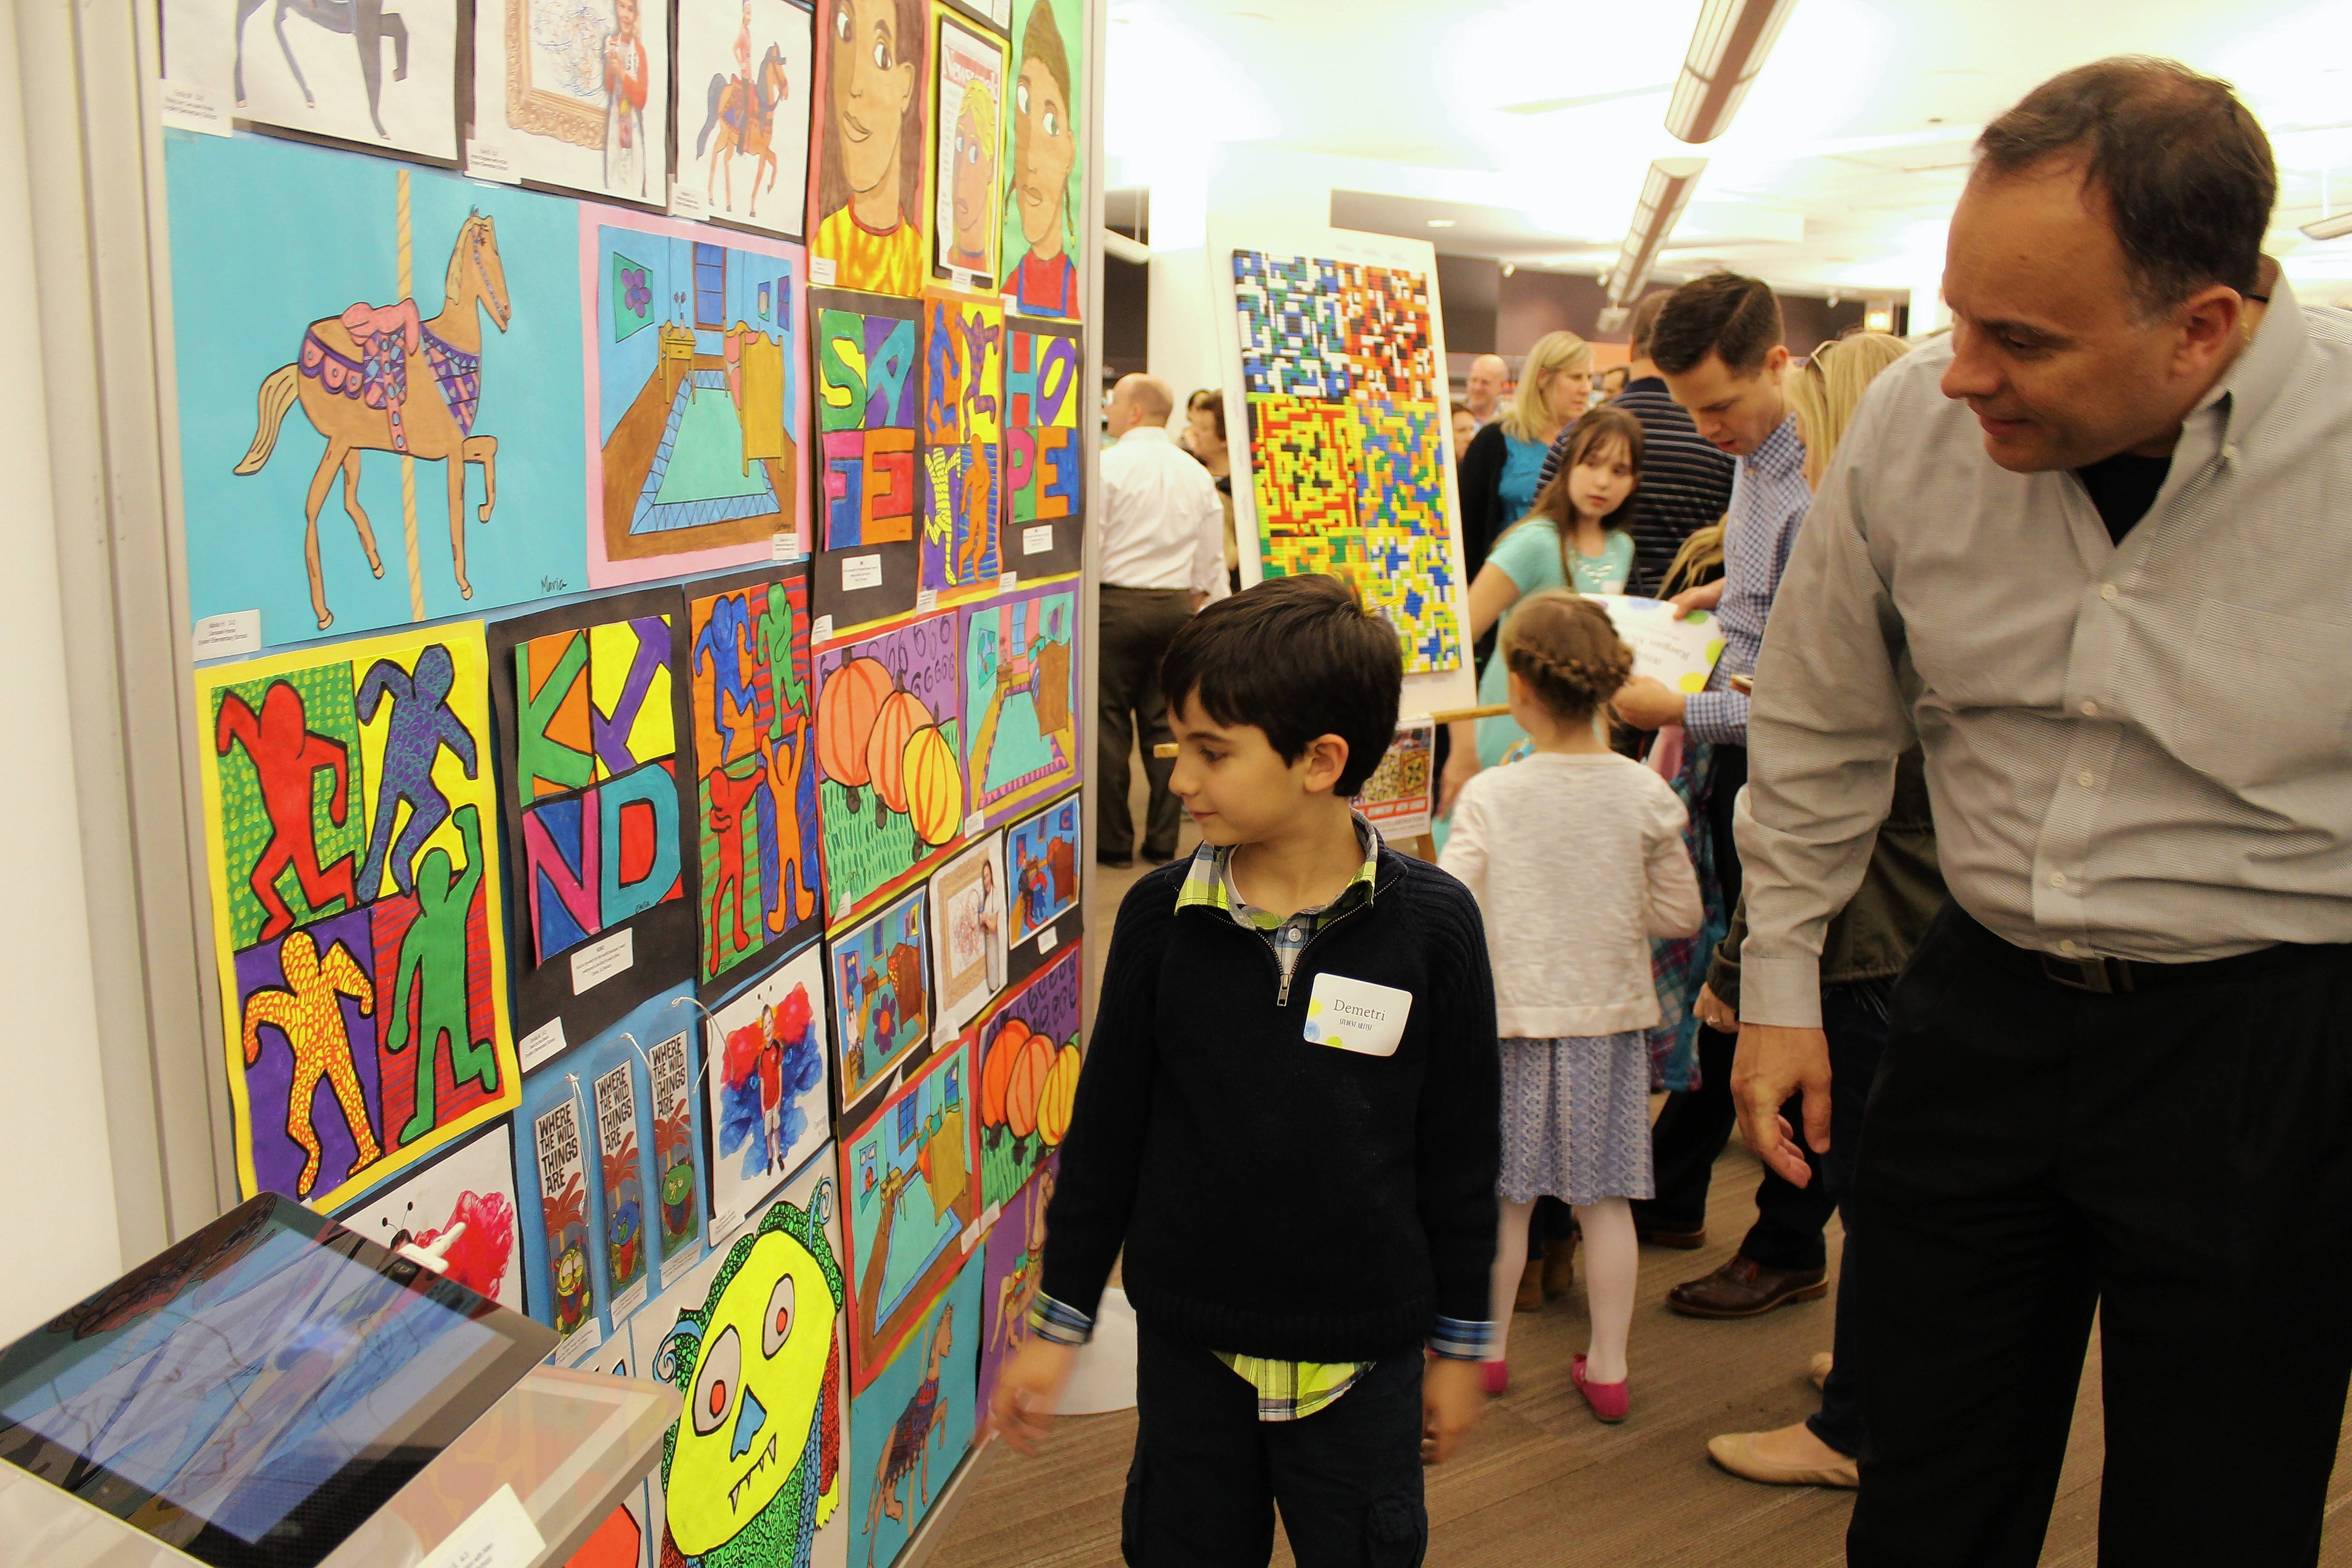 One of the student artists in the annual District 25 art show admires a display at the Arlington Heights Memorial Library. Some 400 students in grades K-8 have their artwork in the exhibition.